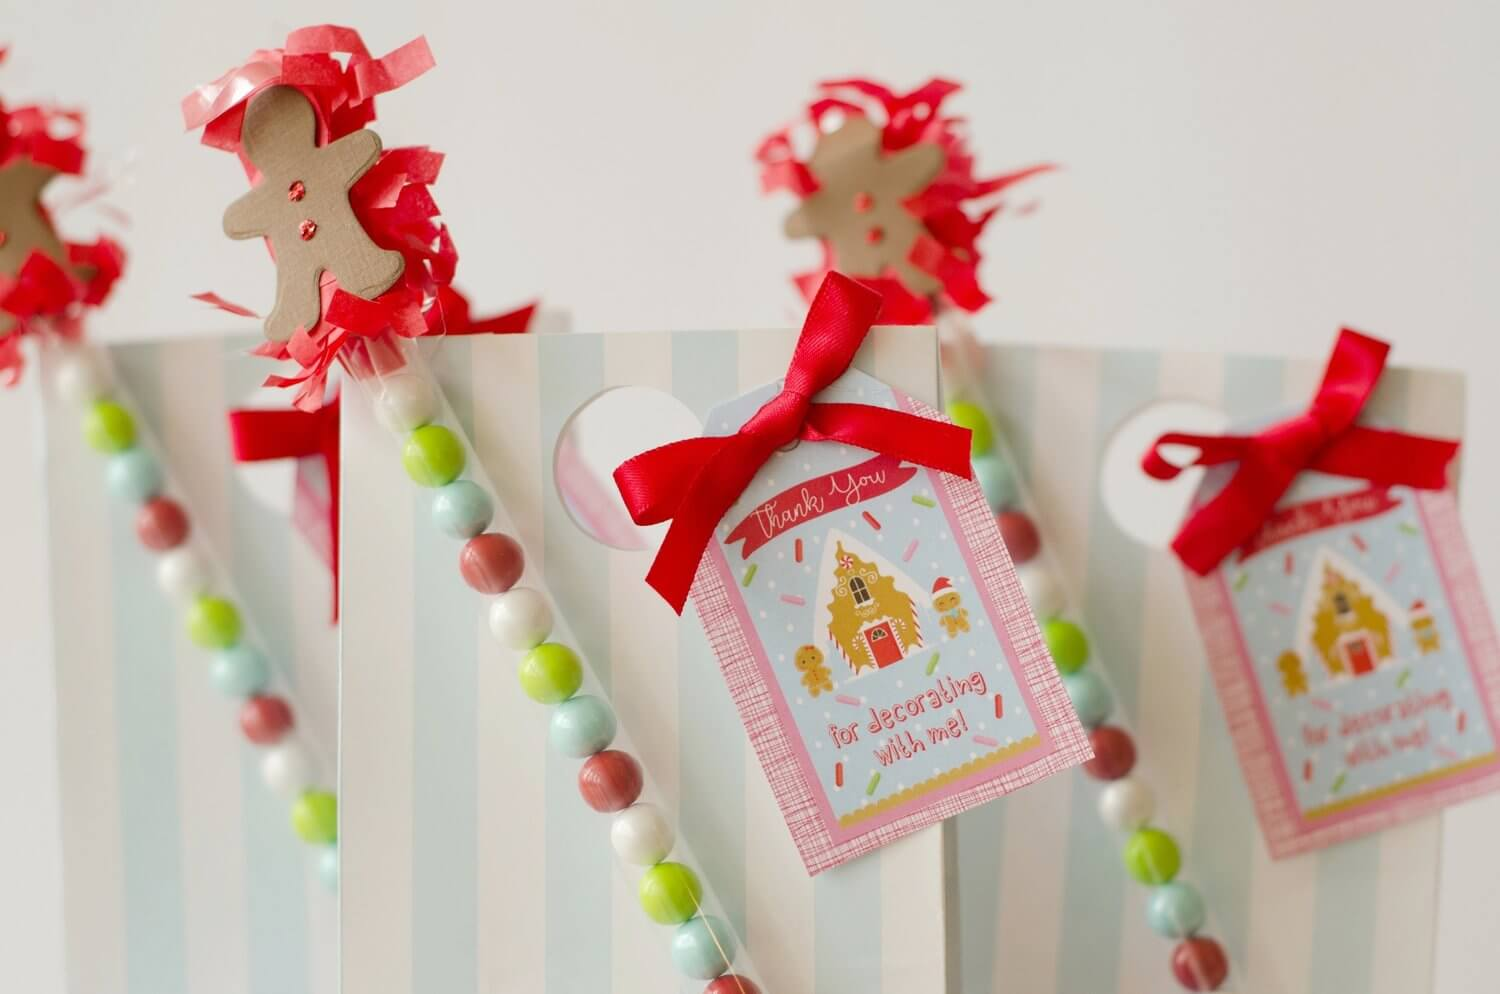 These cute candy wands are the perfect detail for the Christmas cookie decorating party favor bags. See more from this Cookies for Santa party on www.minteventdesign.com - styled by Austin, Texas based party planner Mint Event Design. #holidayparty #holidaypartyideas #christmaspartyideas #partyfavors #favorbags